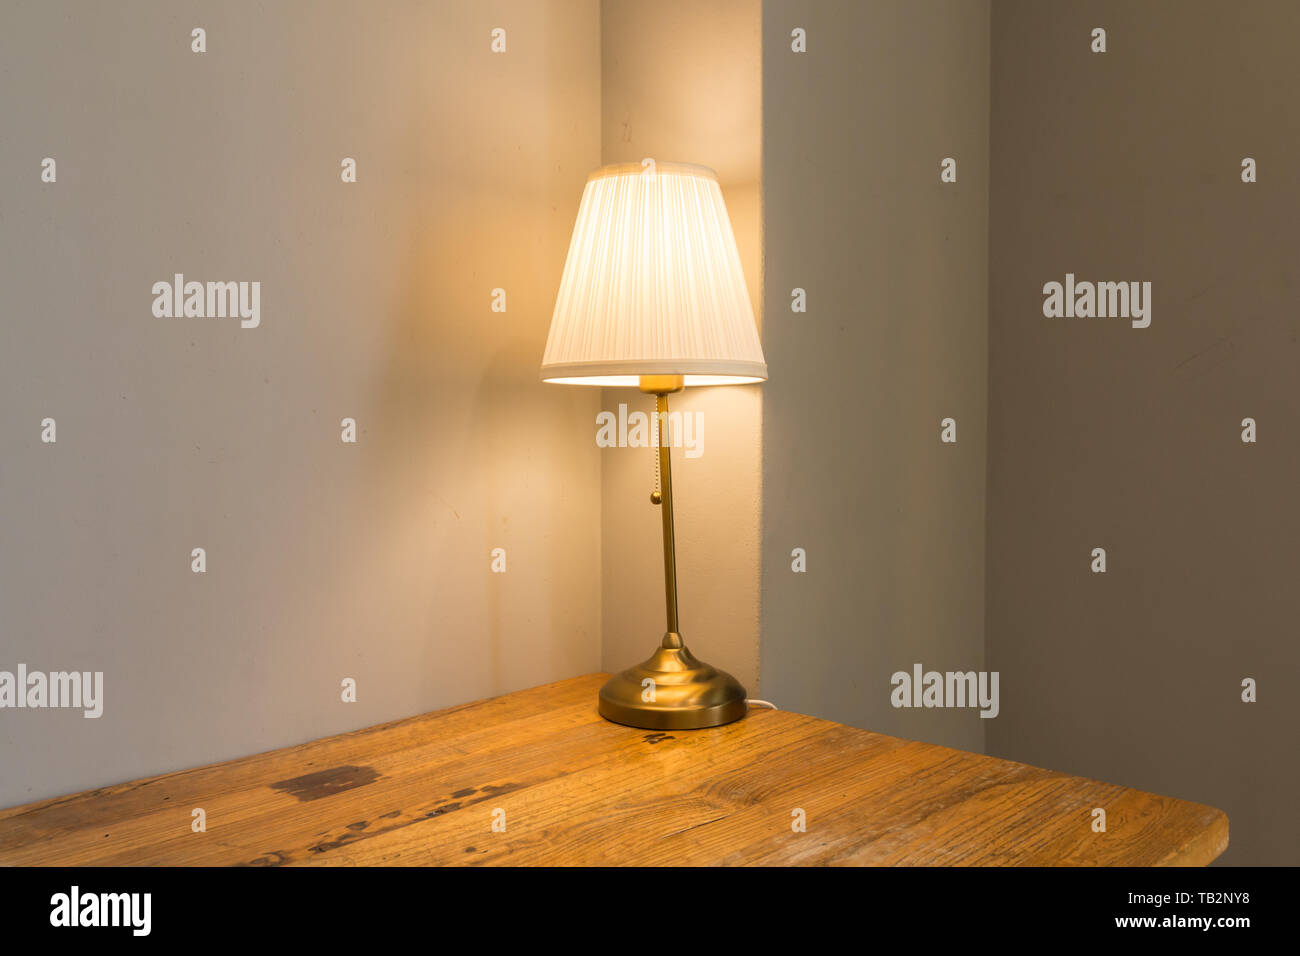 soft lighting on the wooden desk in the room - Stock Image